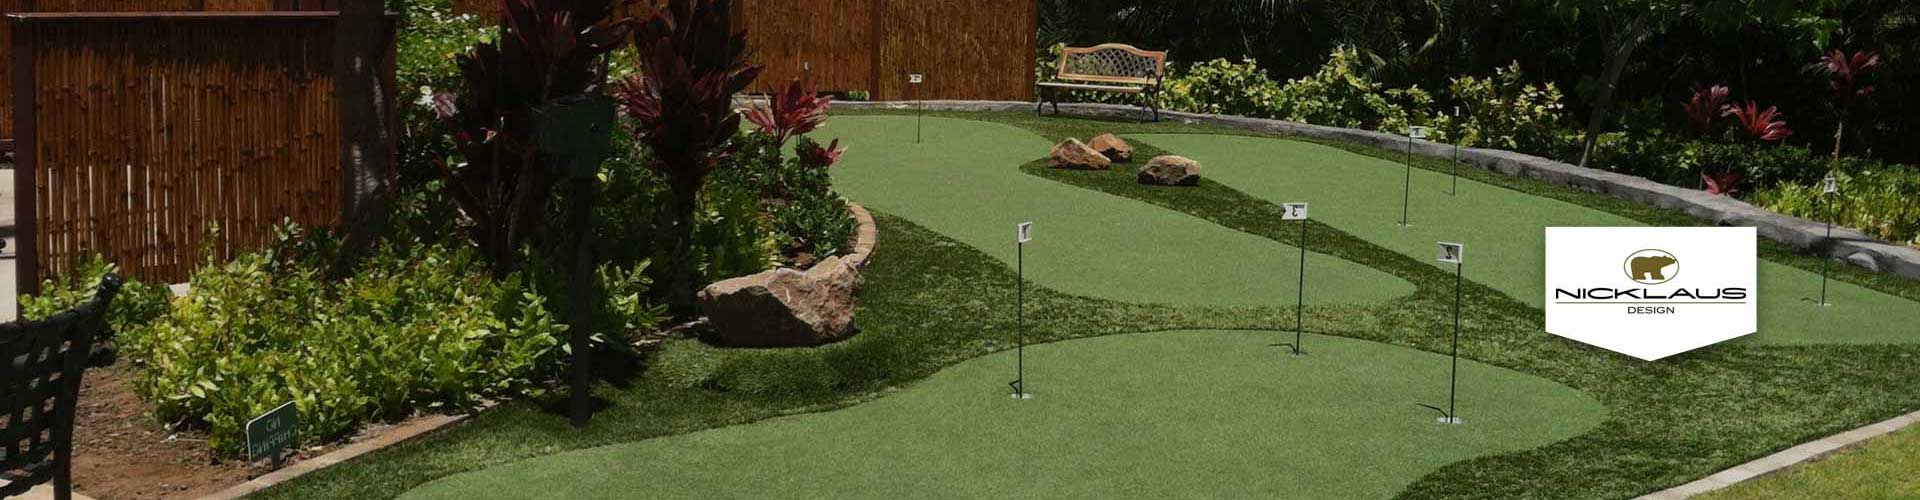 Nicklaus putting greens design from Southwest Greens of Hawaii